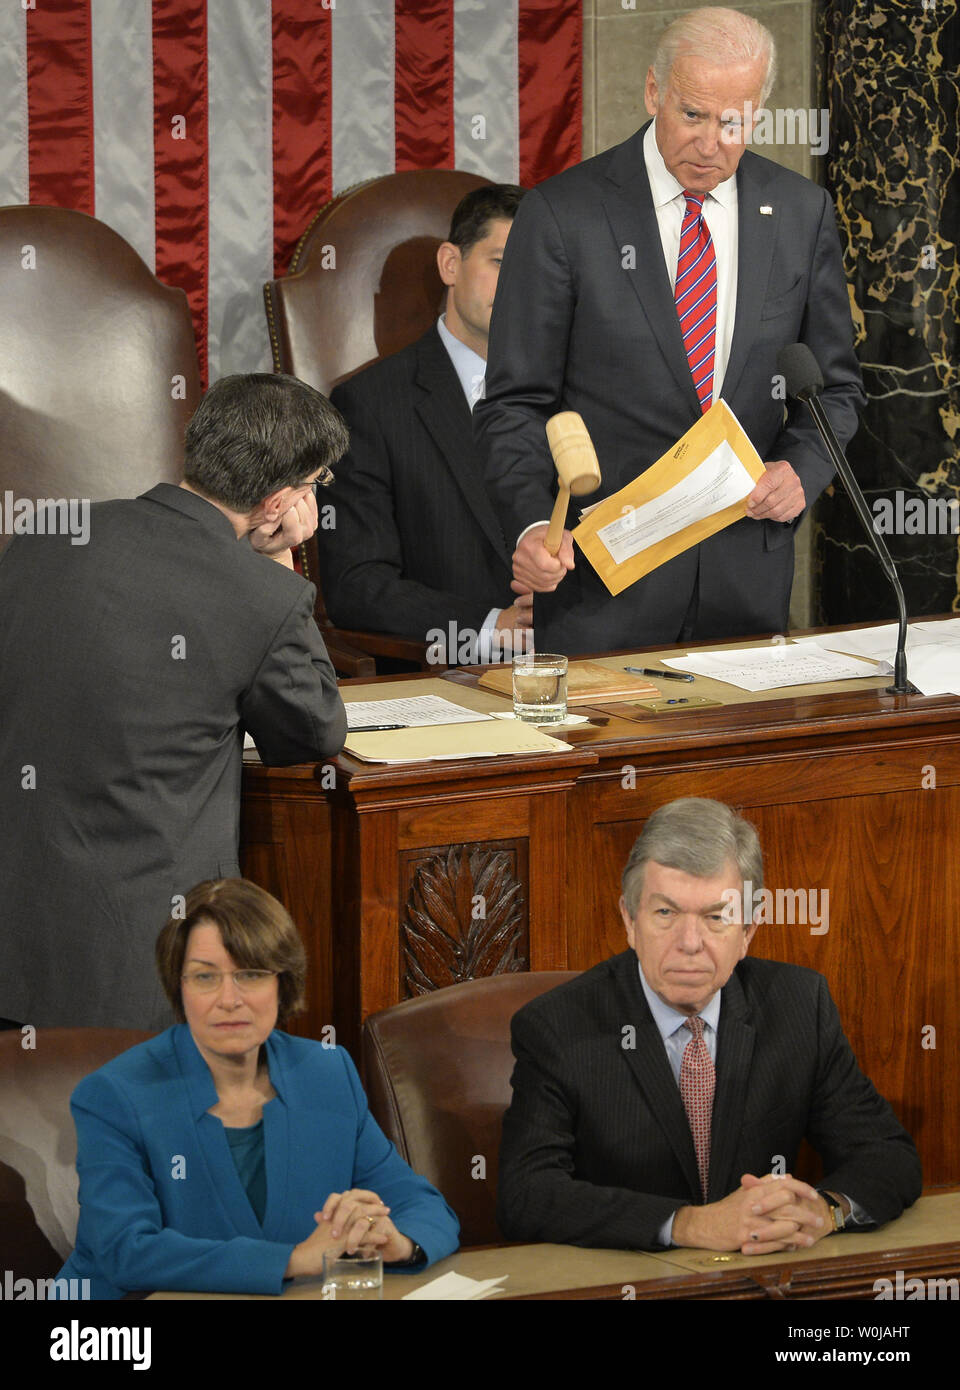 Vice President Joe Biden (TOP) gavels down a floor protest as Sen. Amy Klobuchar (D-MN),(L) and Sen. Roy Blunt (R-MO) listen as they preside over the procedure to count and validate the votes of the Electoral College on the floor of the House at the U.S. Capitol, January 6, 2017, in Washington, DC. The procedure, established by the Constitution, finalized Donald J. Trump and Mike Pence as the president and vice president.                 Photo by Mike Theiler/UPI Stock Photo